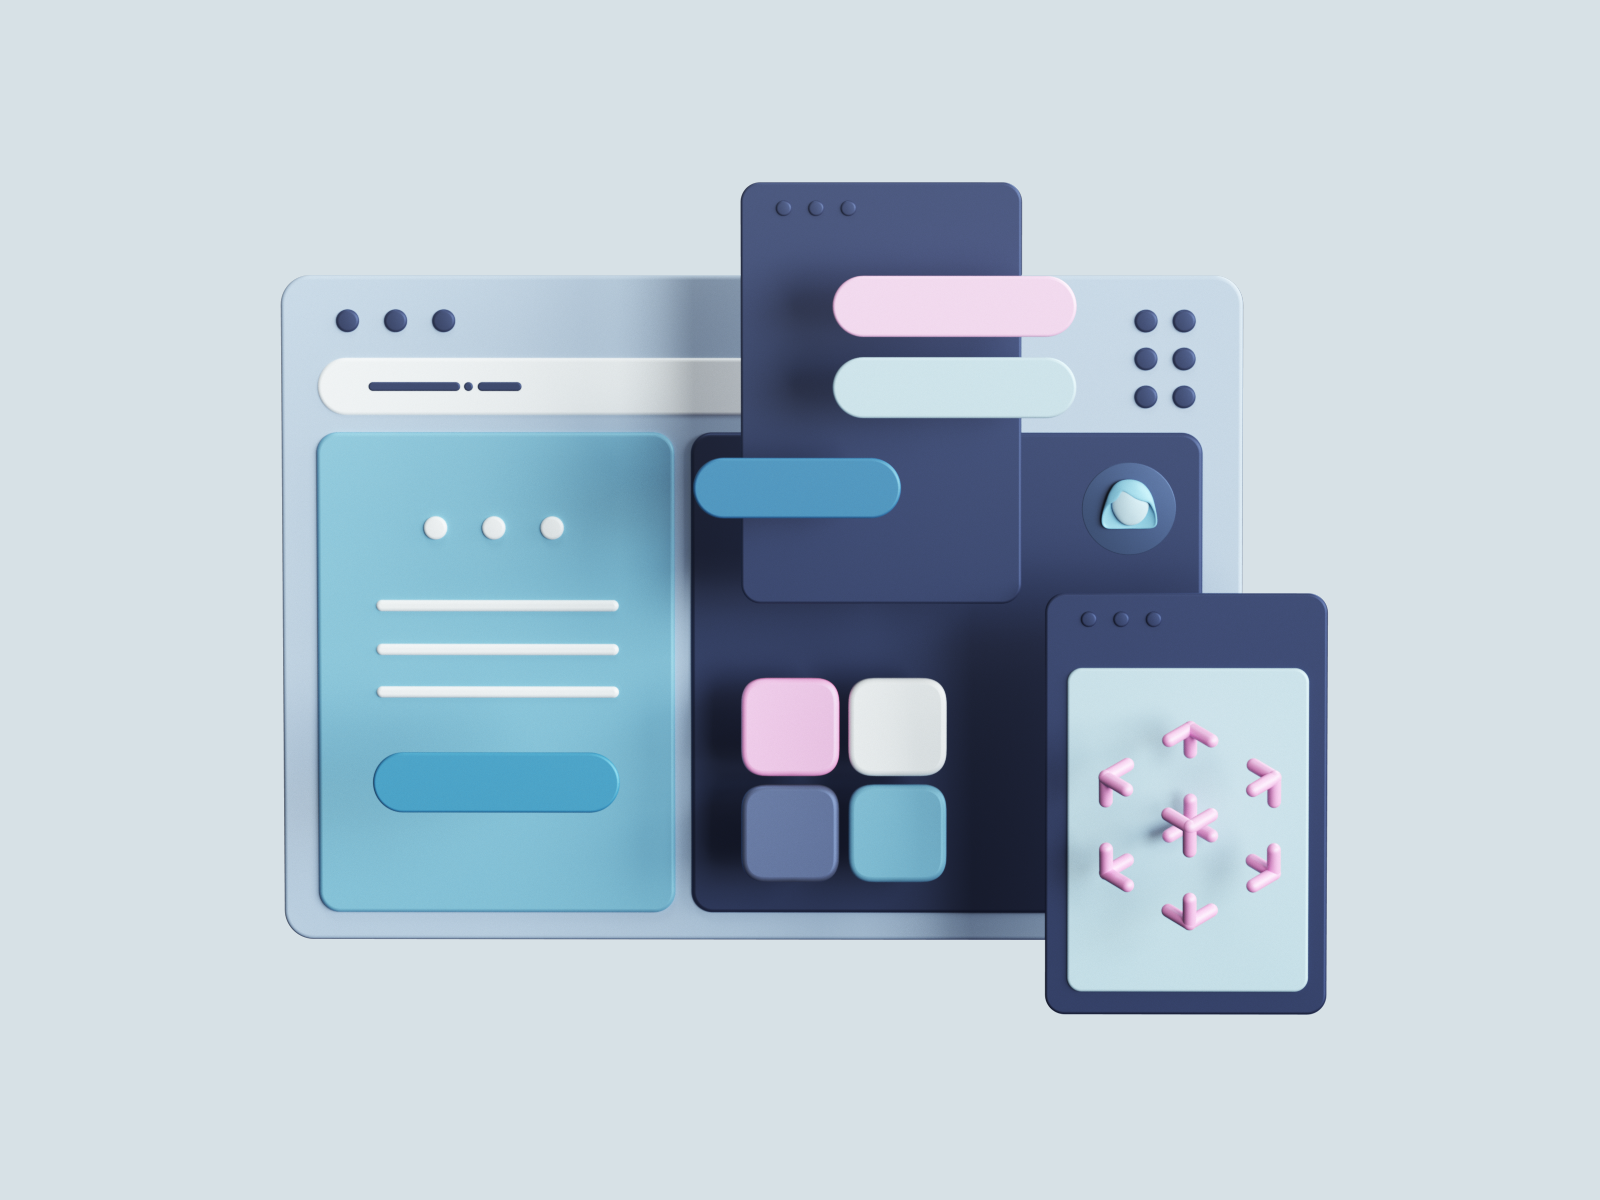 3D illustration of a user interface and its components